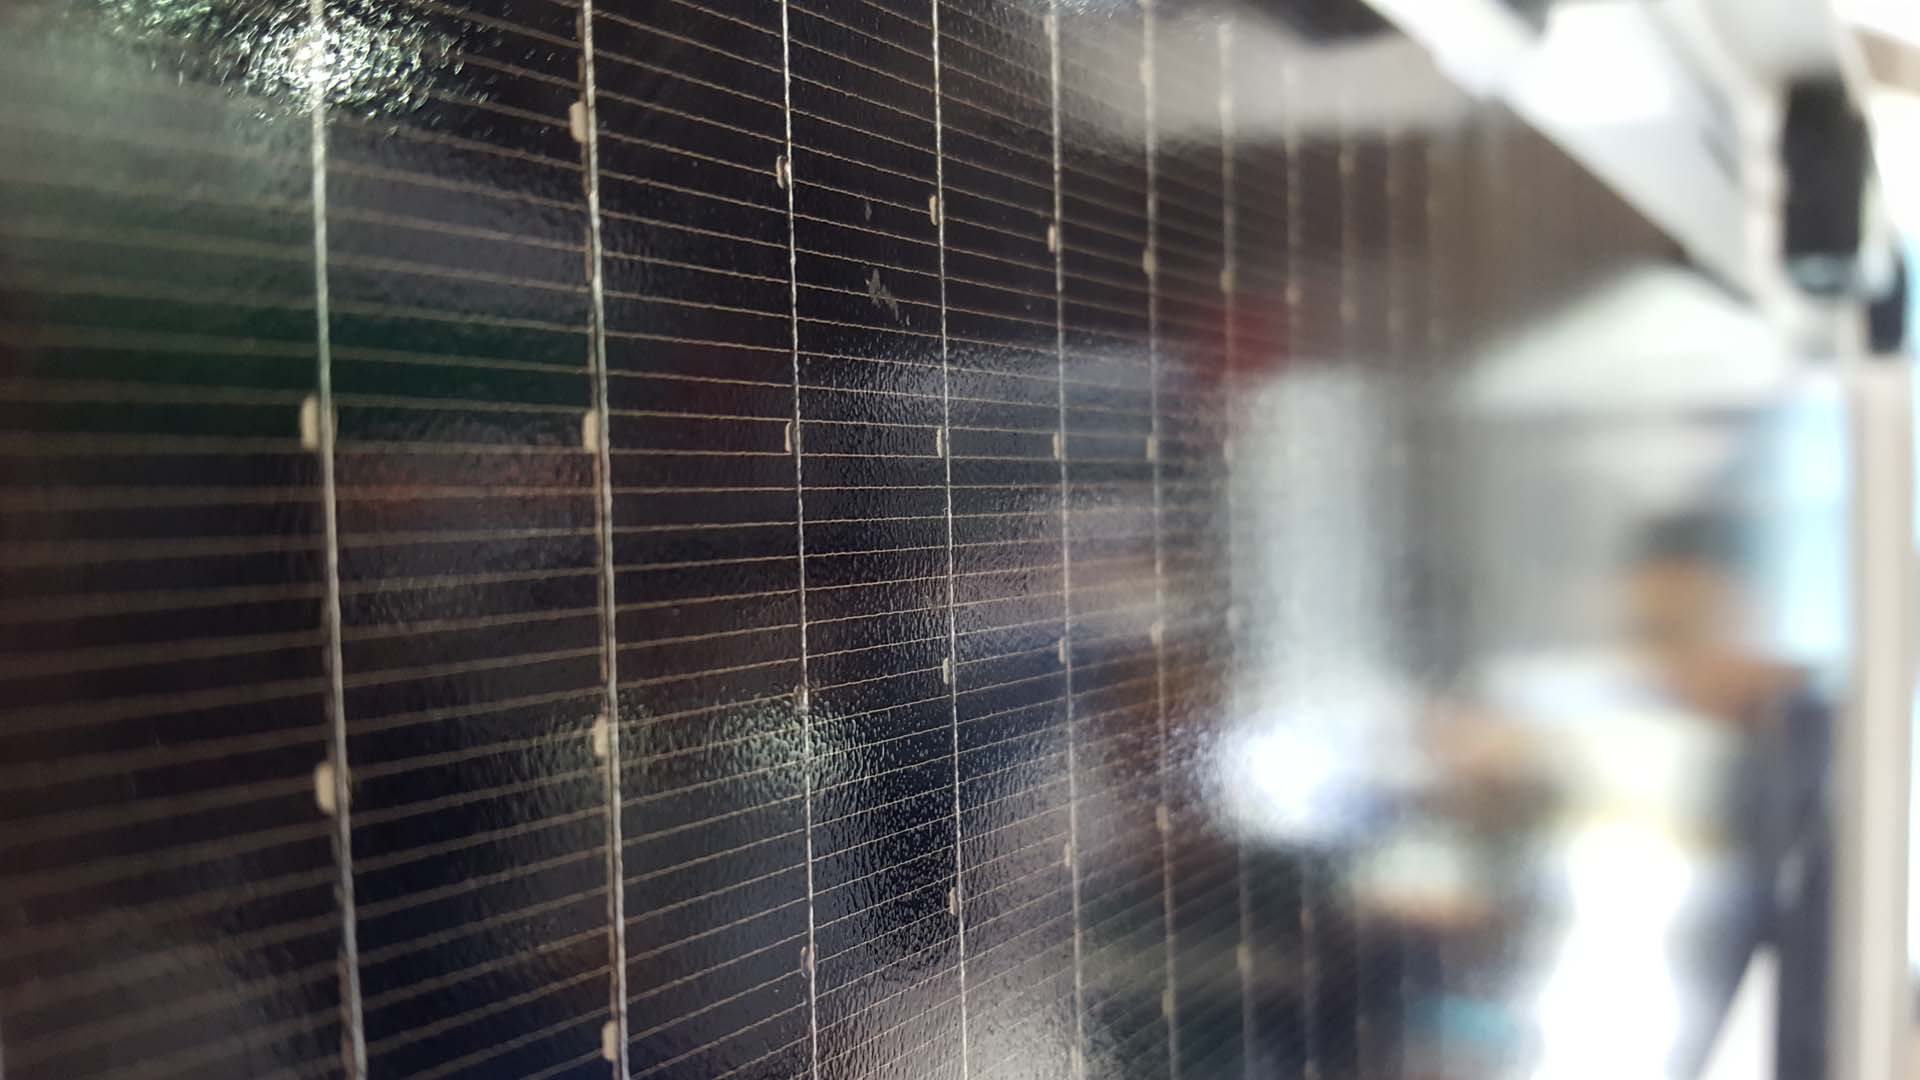 As one of the metallization solution providers for high efficiency cells, DKEM has kept a close eye on trends in market supply and demand in both the upstream and downstream segments of the PV industry chain, especially in the manufacturing capacity for cells.